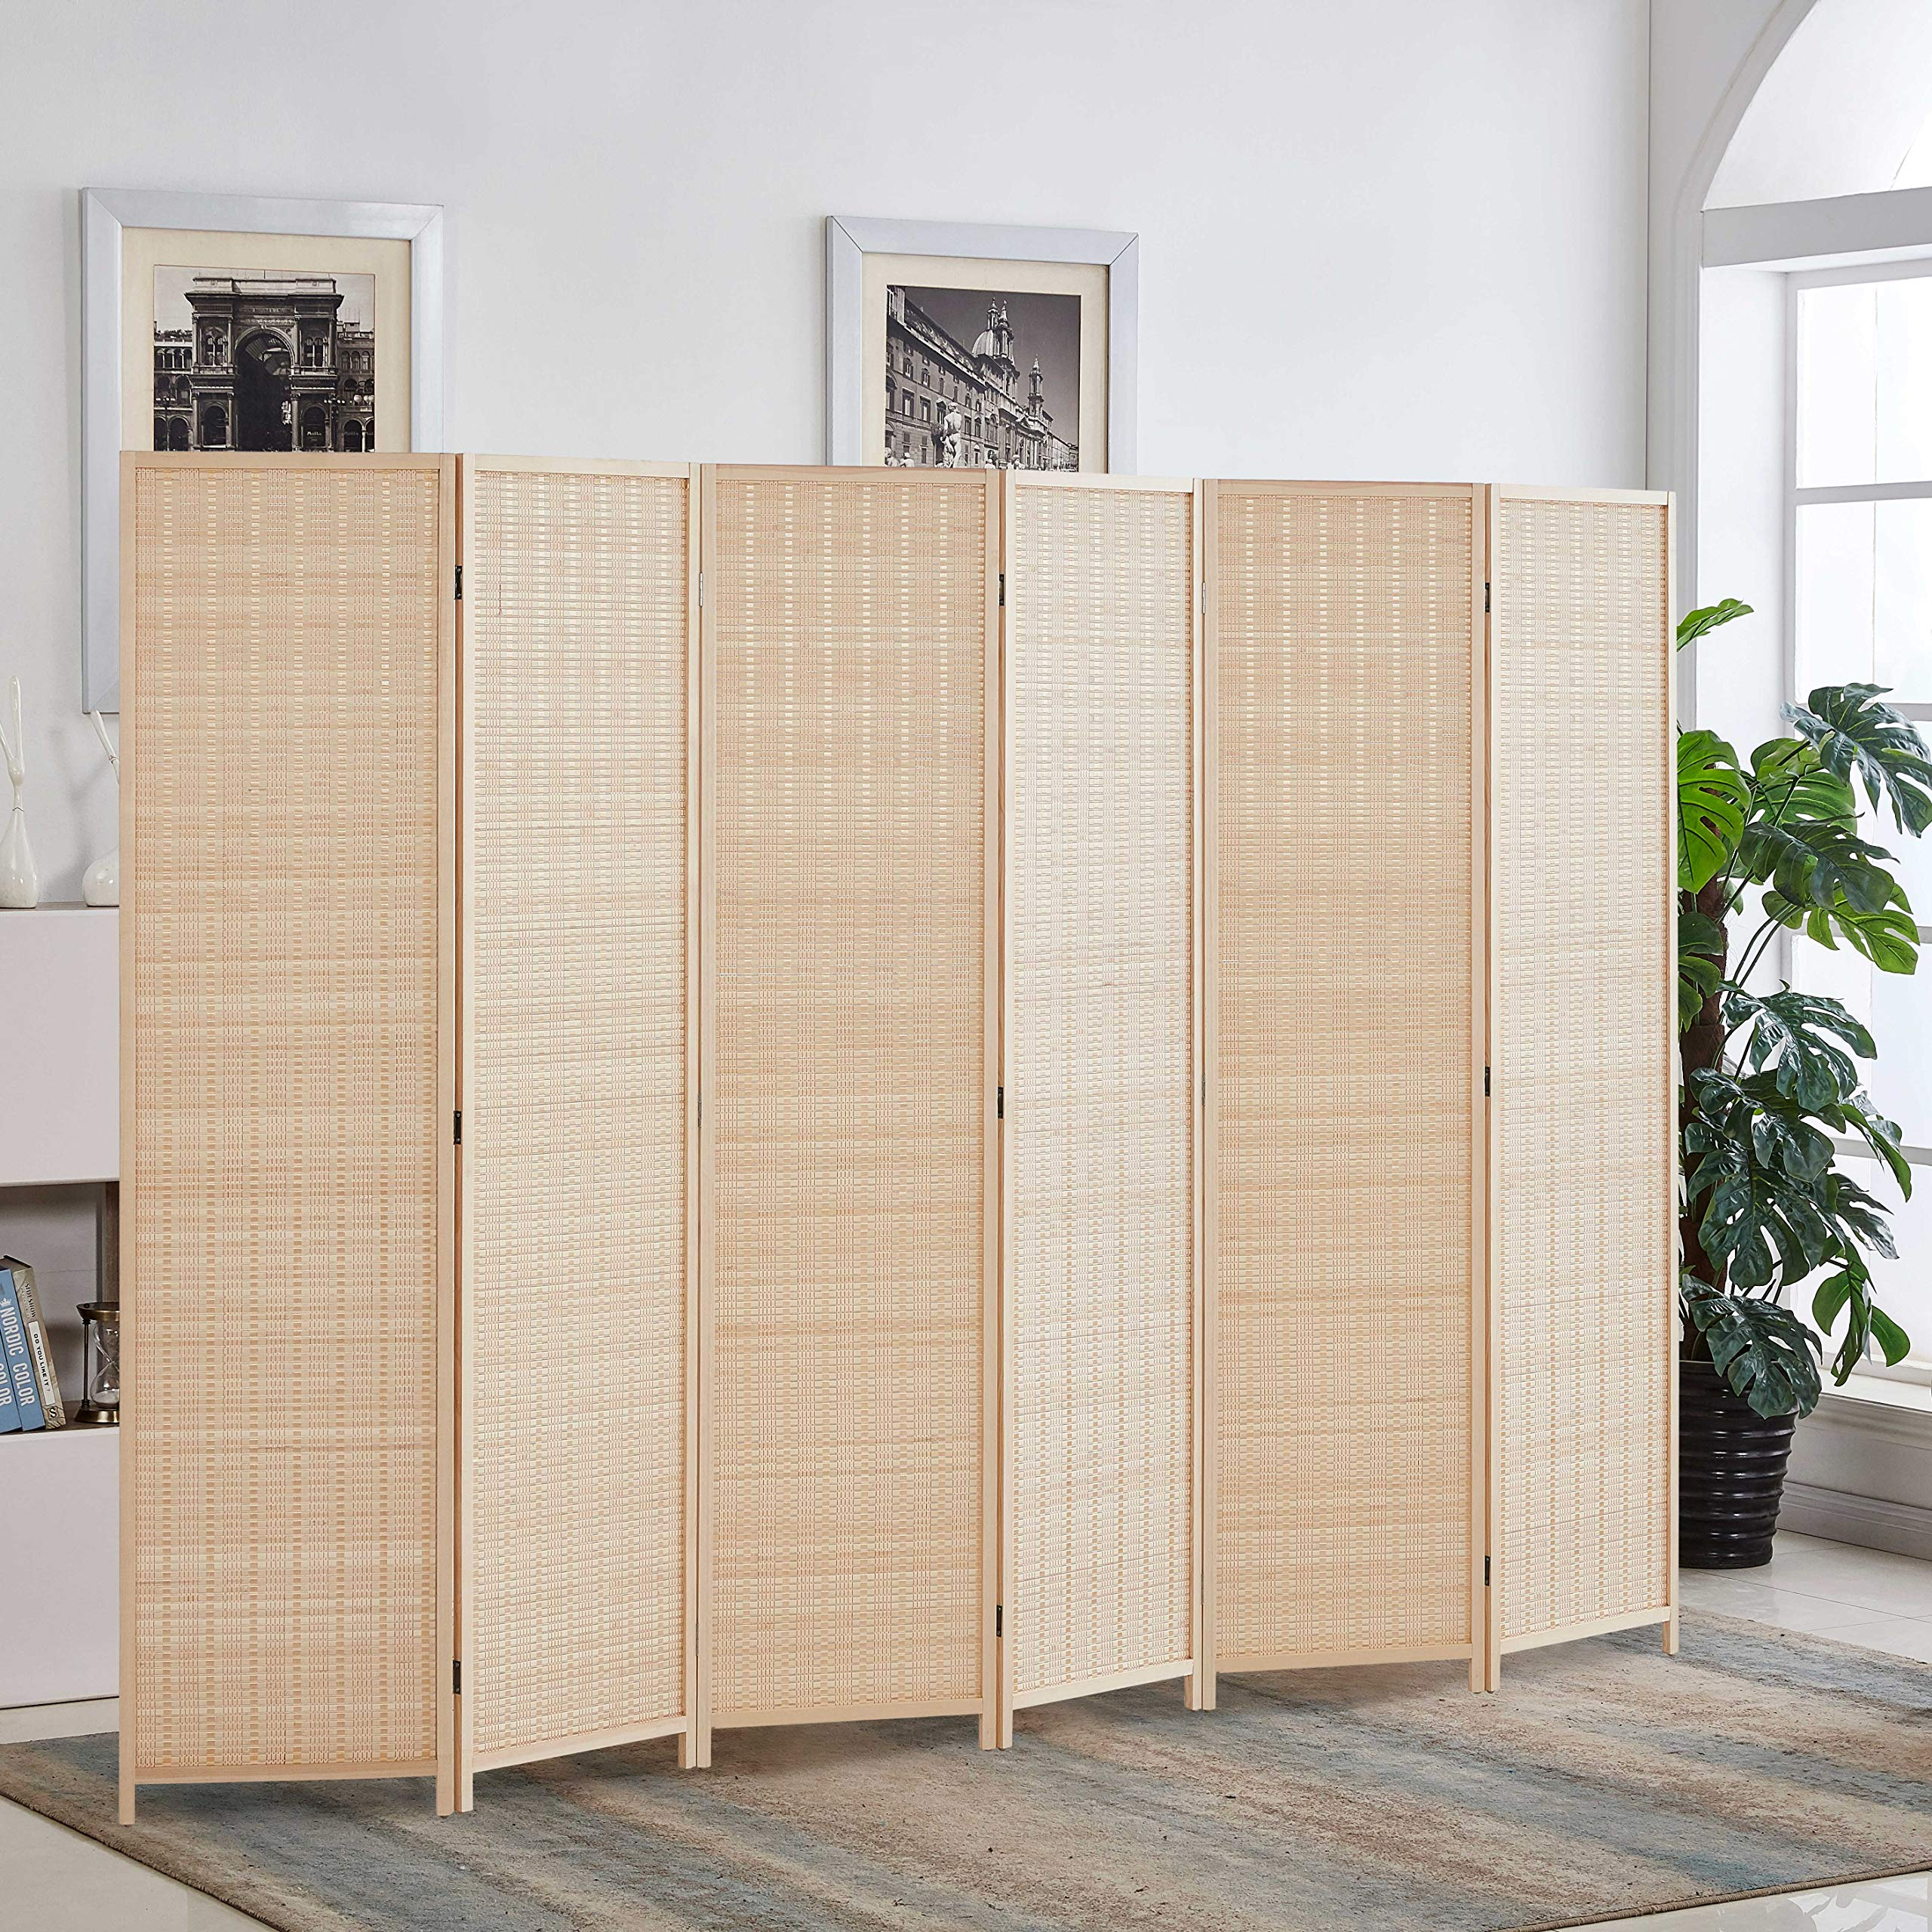 Rose Home Fashion 6 ft. Tall-Extra Wide, Bamboo Room Divider, 6 Panel Room Divider/Screen, Folding Privacy Screen Room Divider, Wall Divider,Room Partitions/Separator/Dividers-Bamboo - 6 Panel by Rose Home Fashion